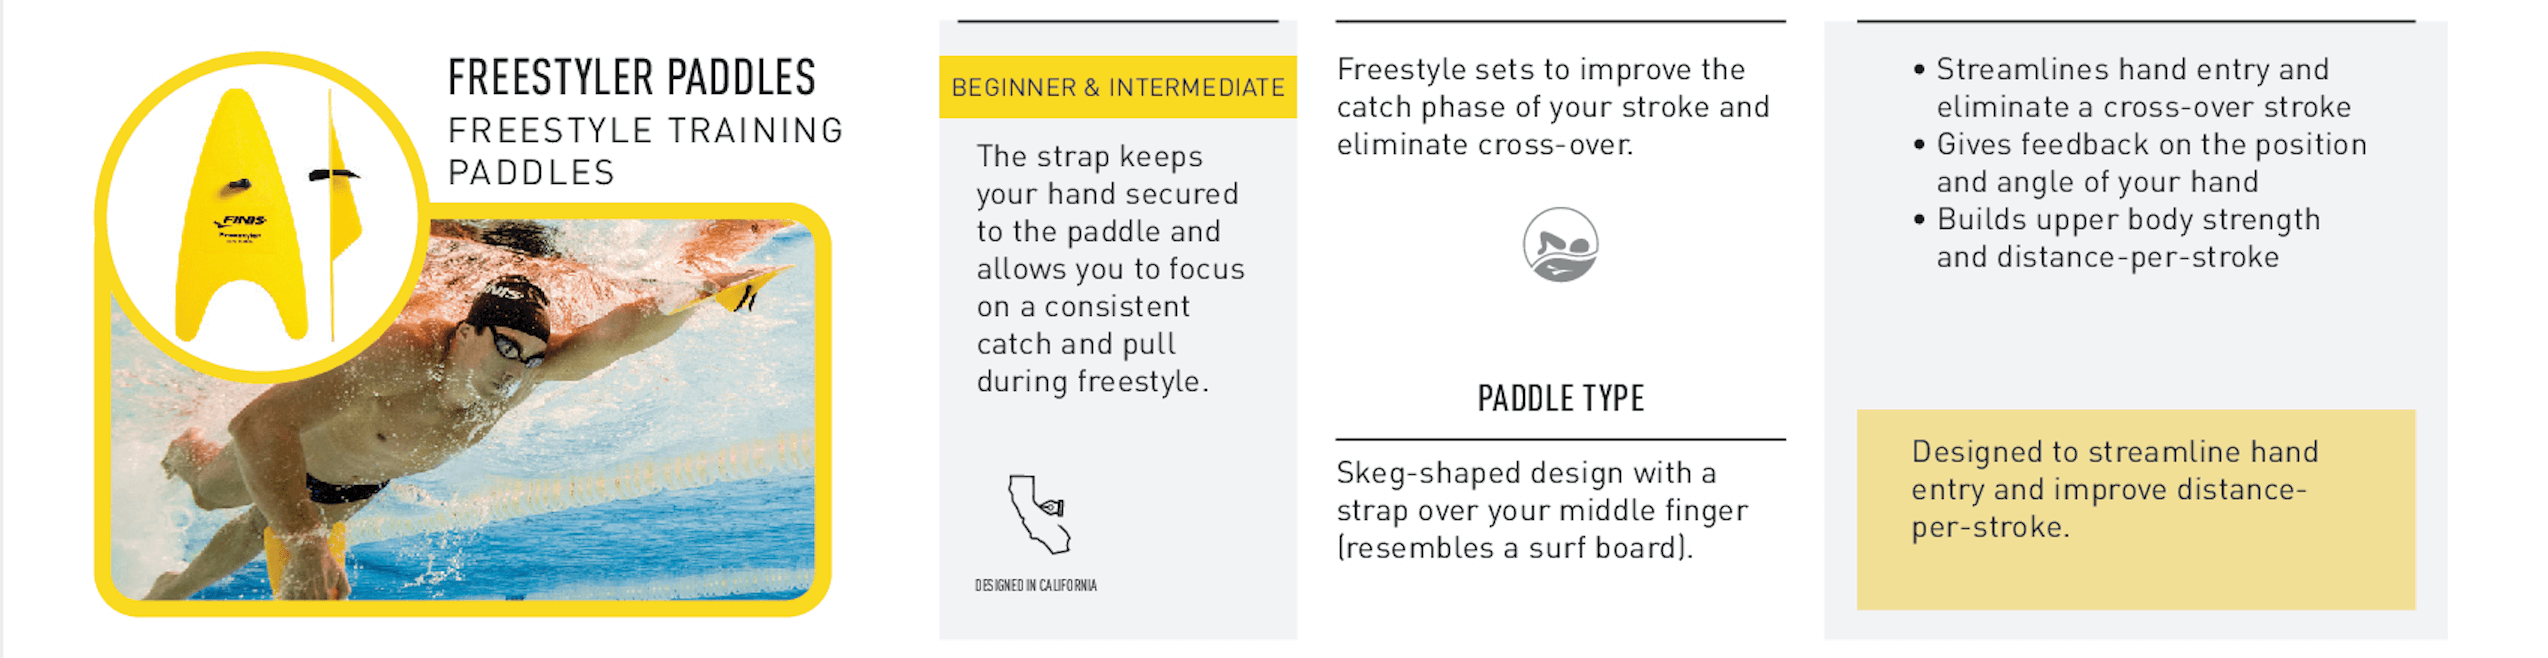 FINIS Freestyler Paddles help target help identiy and correct issues with freestyle